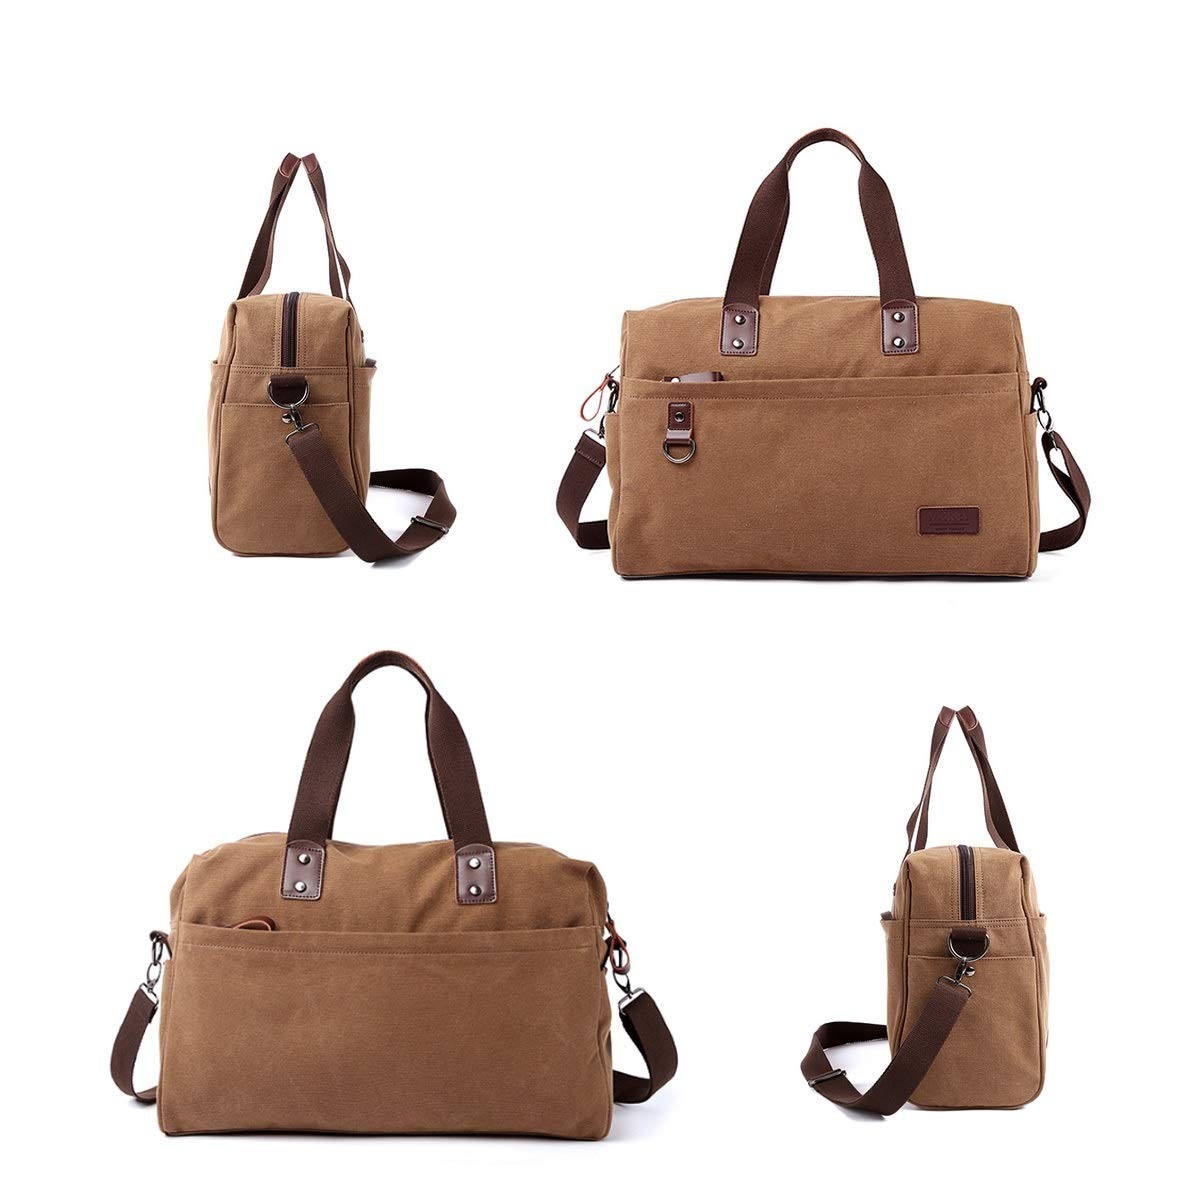 Portable Xionghaizi Duffel Bag Travel Handbag Wearable Large Capacity Classic Brown Waterproof 17 Inches Moving Essential Travel